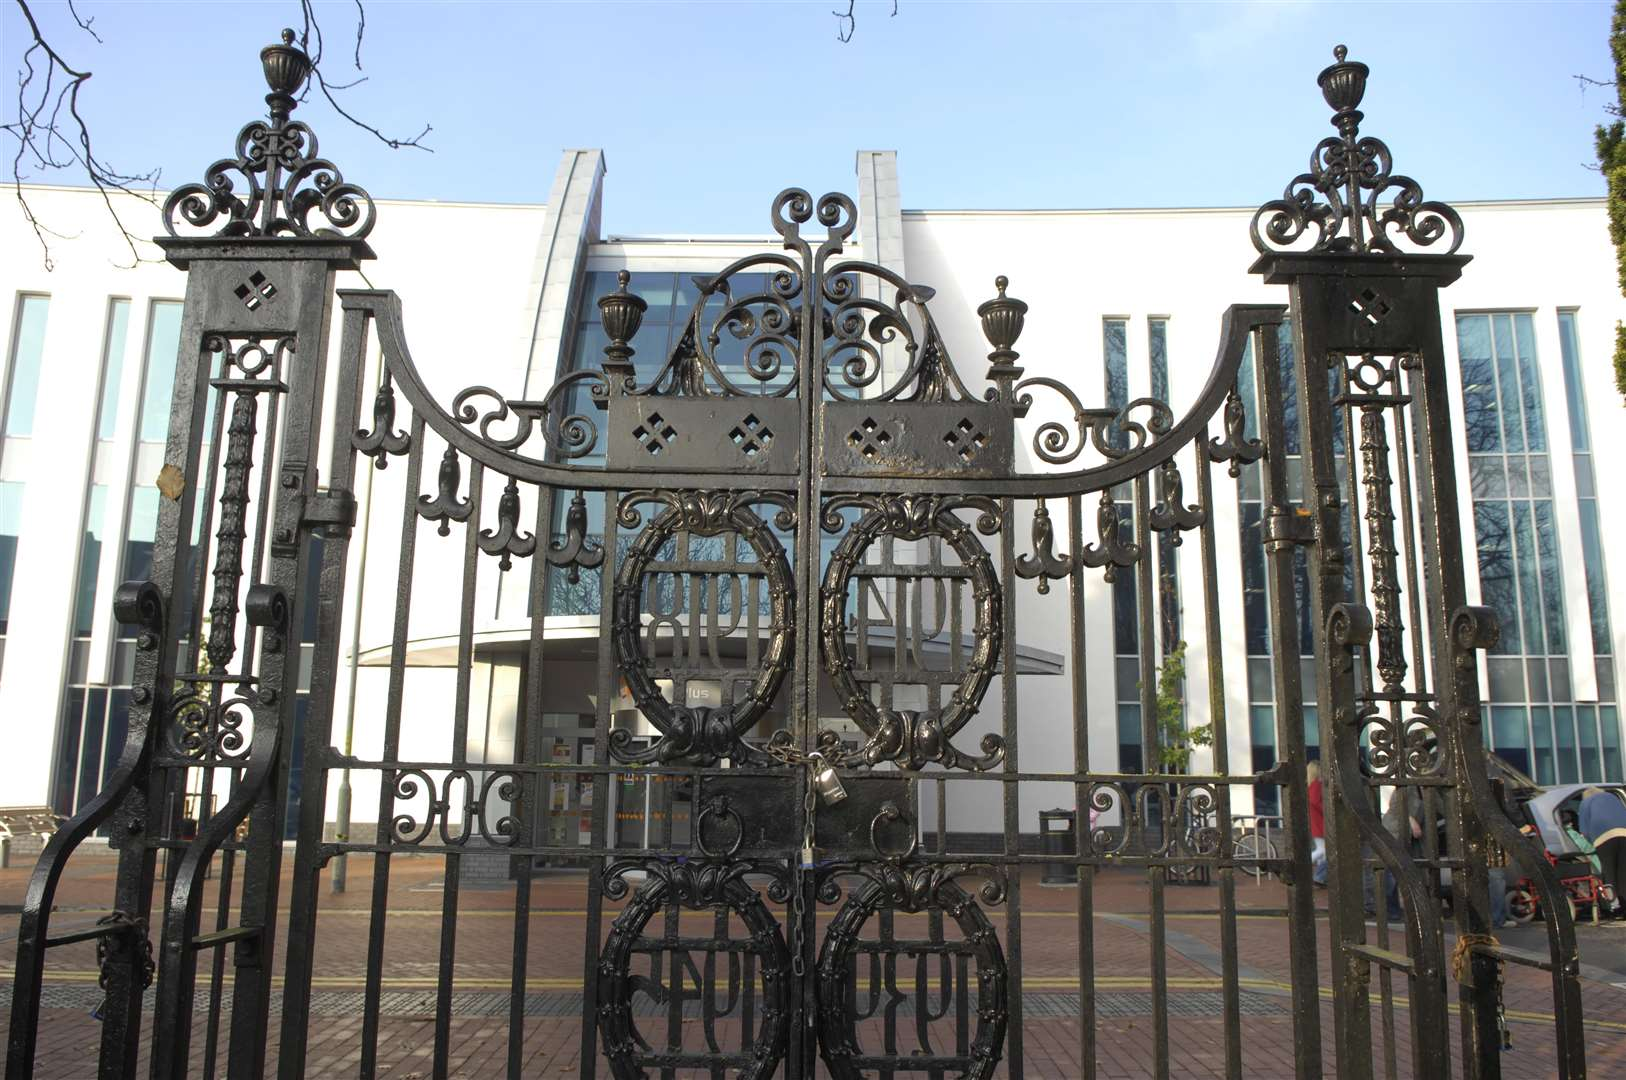 Entrance gates to the Memorial Gardens Picture : Gary Browne (5219128)